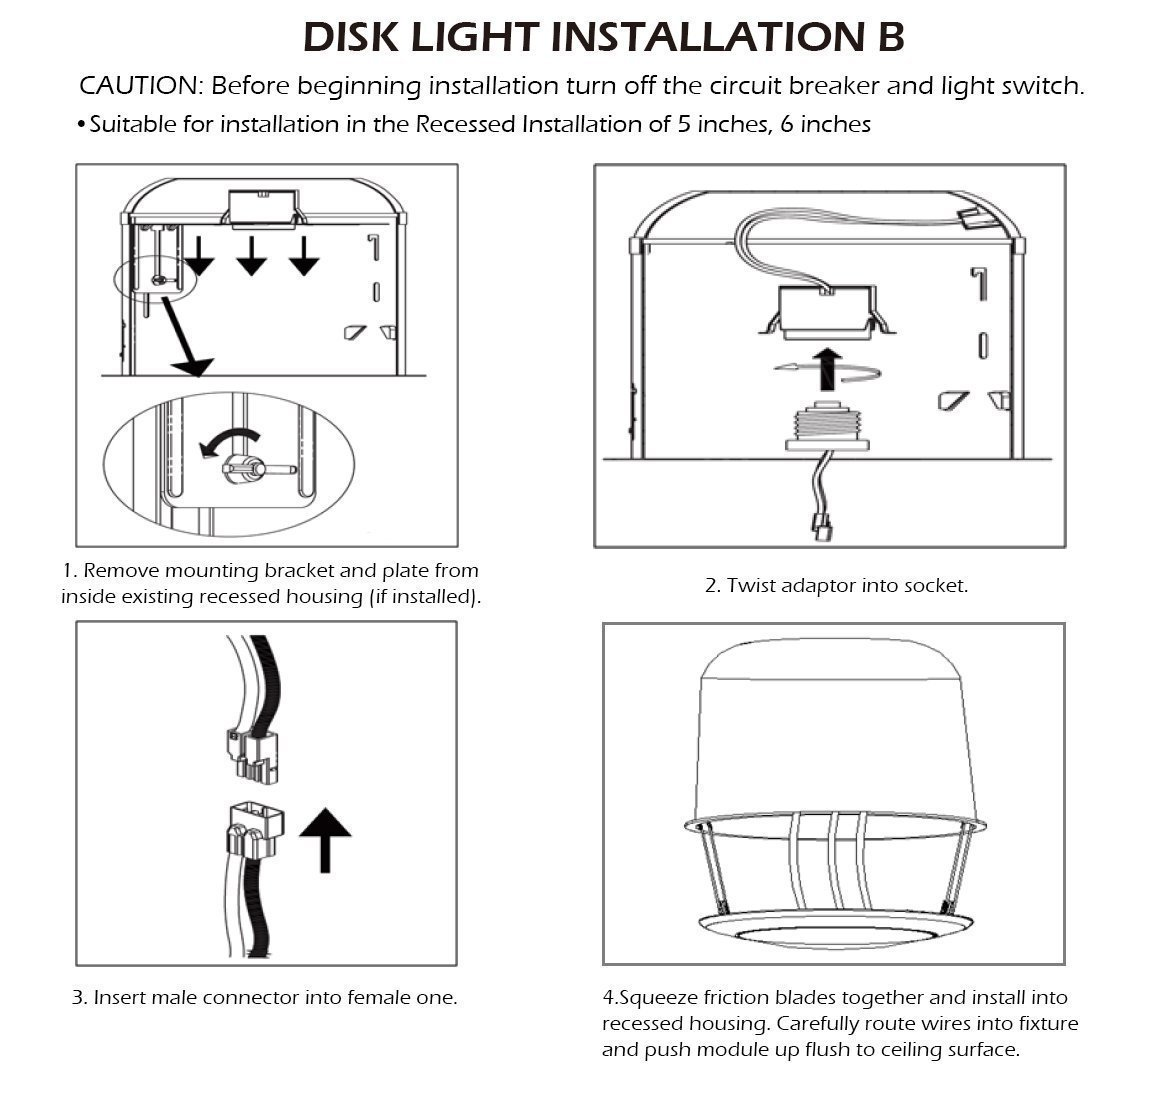 Wiring diagram for multiple downlights